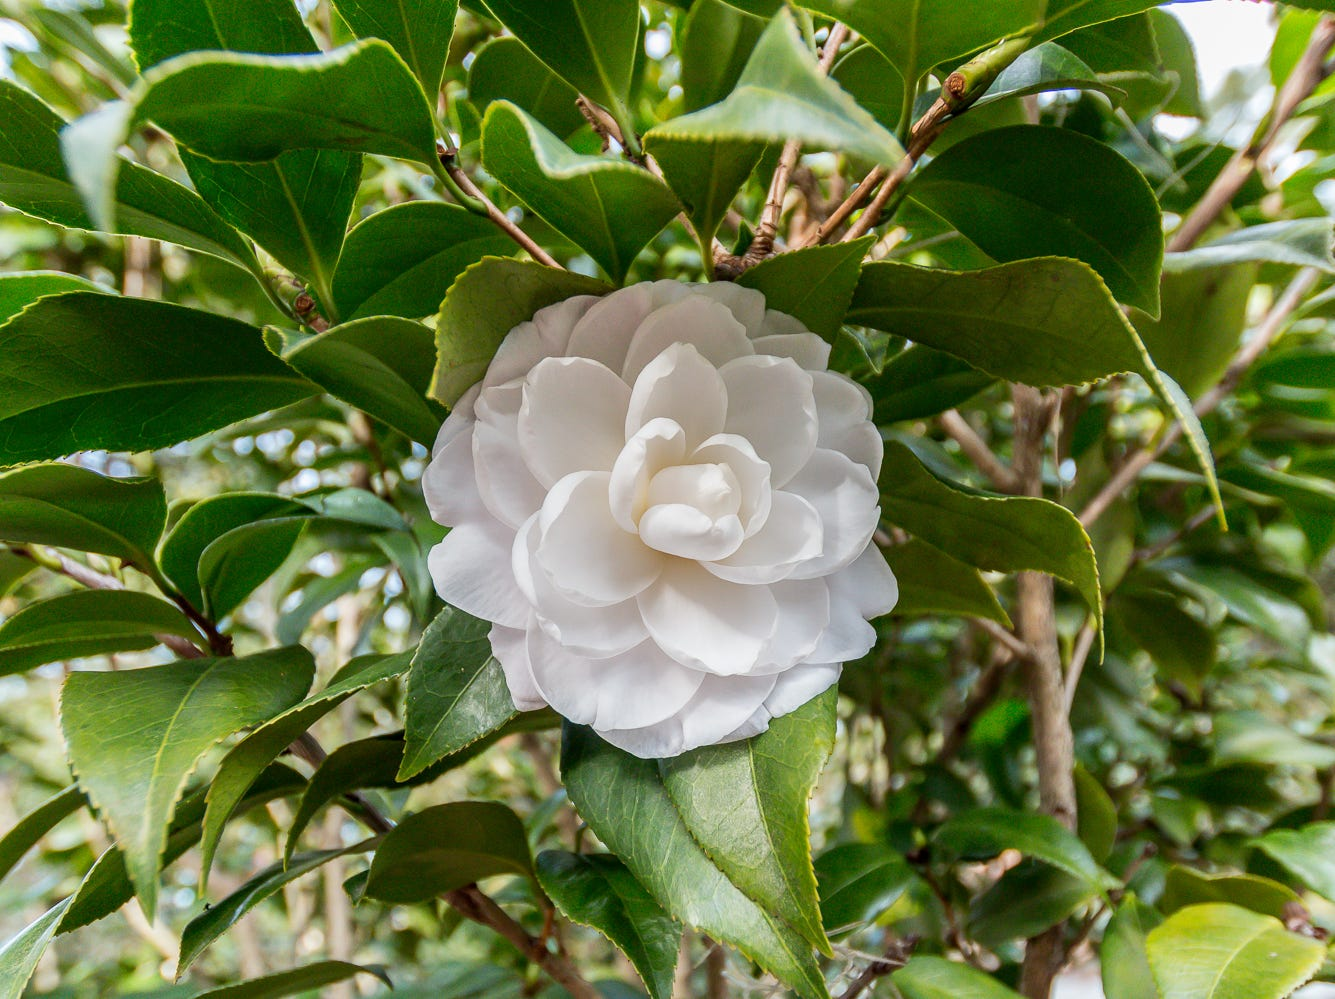 A blooming Alba Pena camellia is on display in the University of West Florida's Camellia Garden on Wednesday, November 28, 2018. The garden is located just east of Building 41 for Pyschology and Behavioral Sciences.